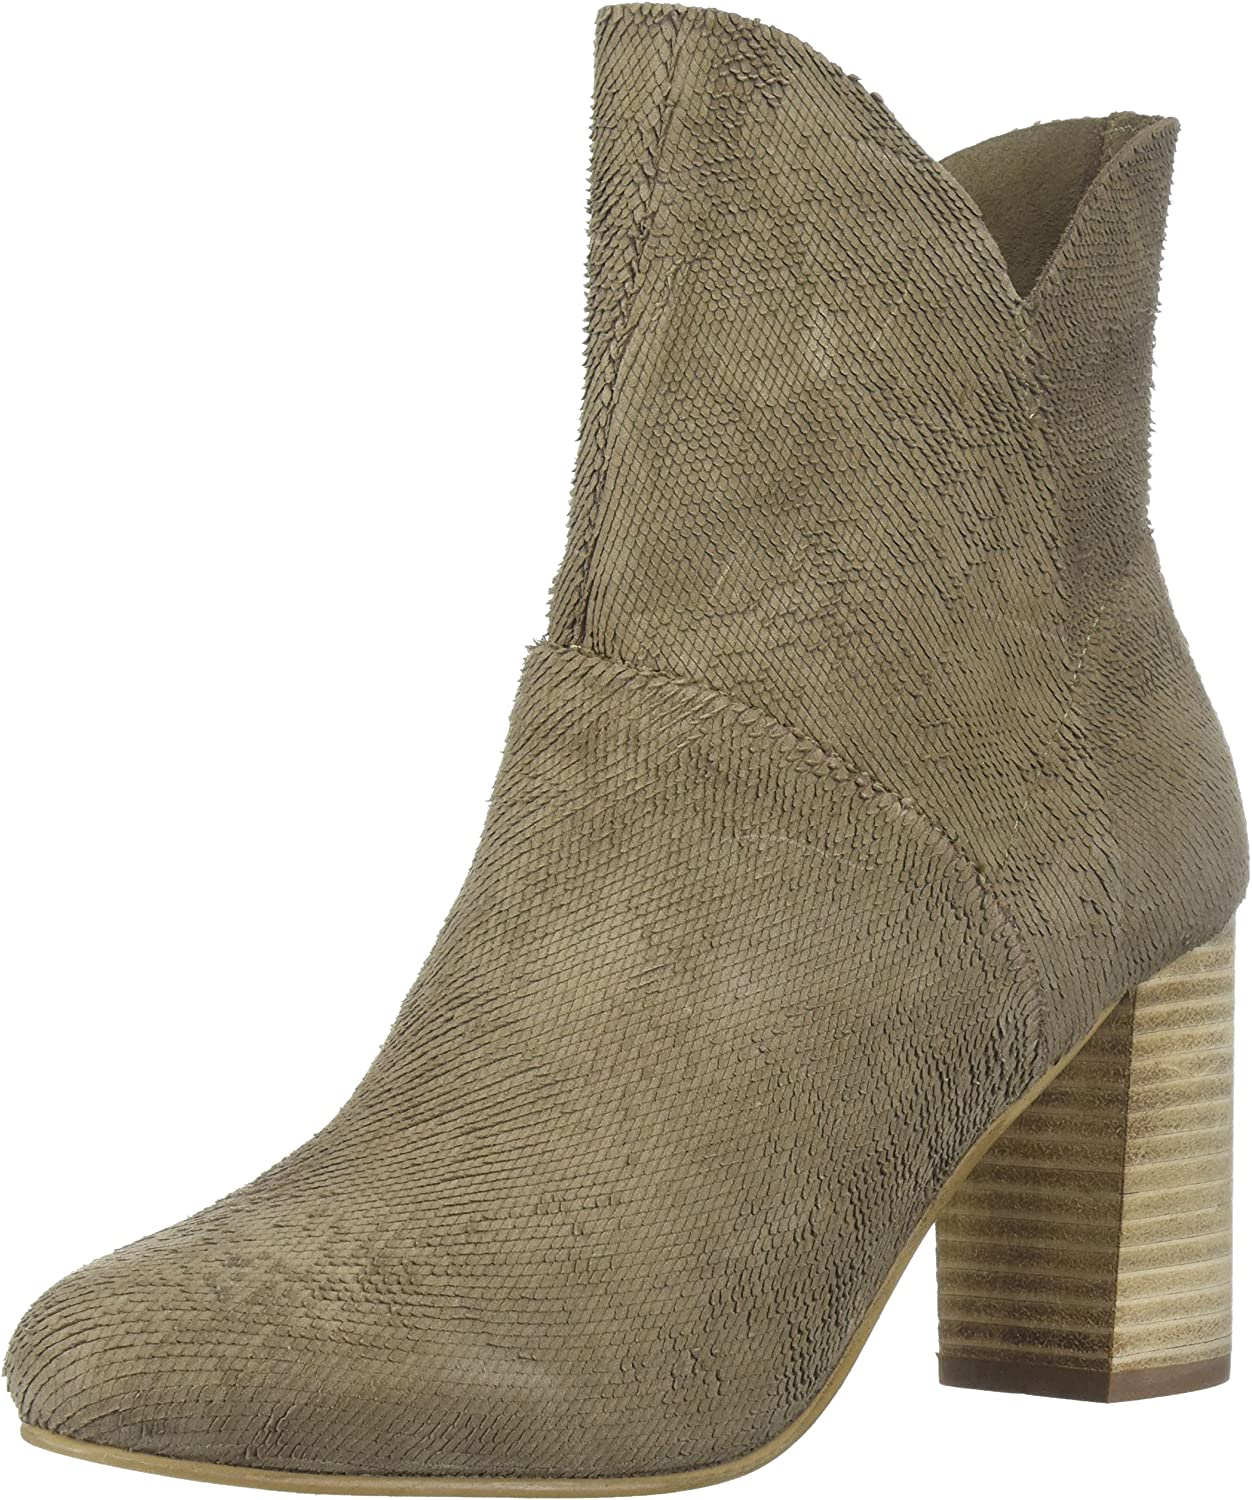 Seychelles Womens Prop Ankle Boot